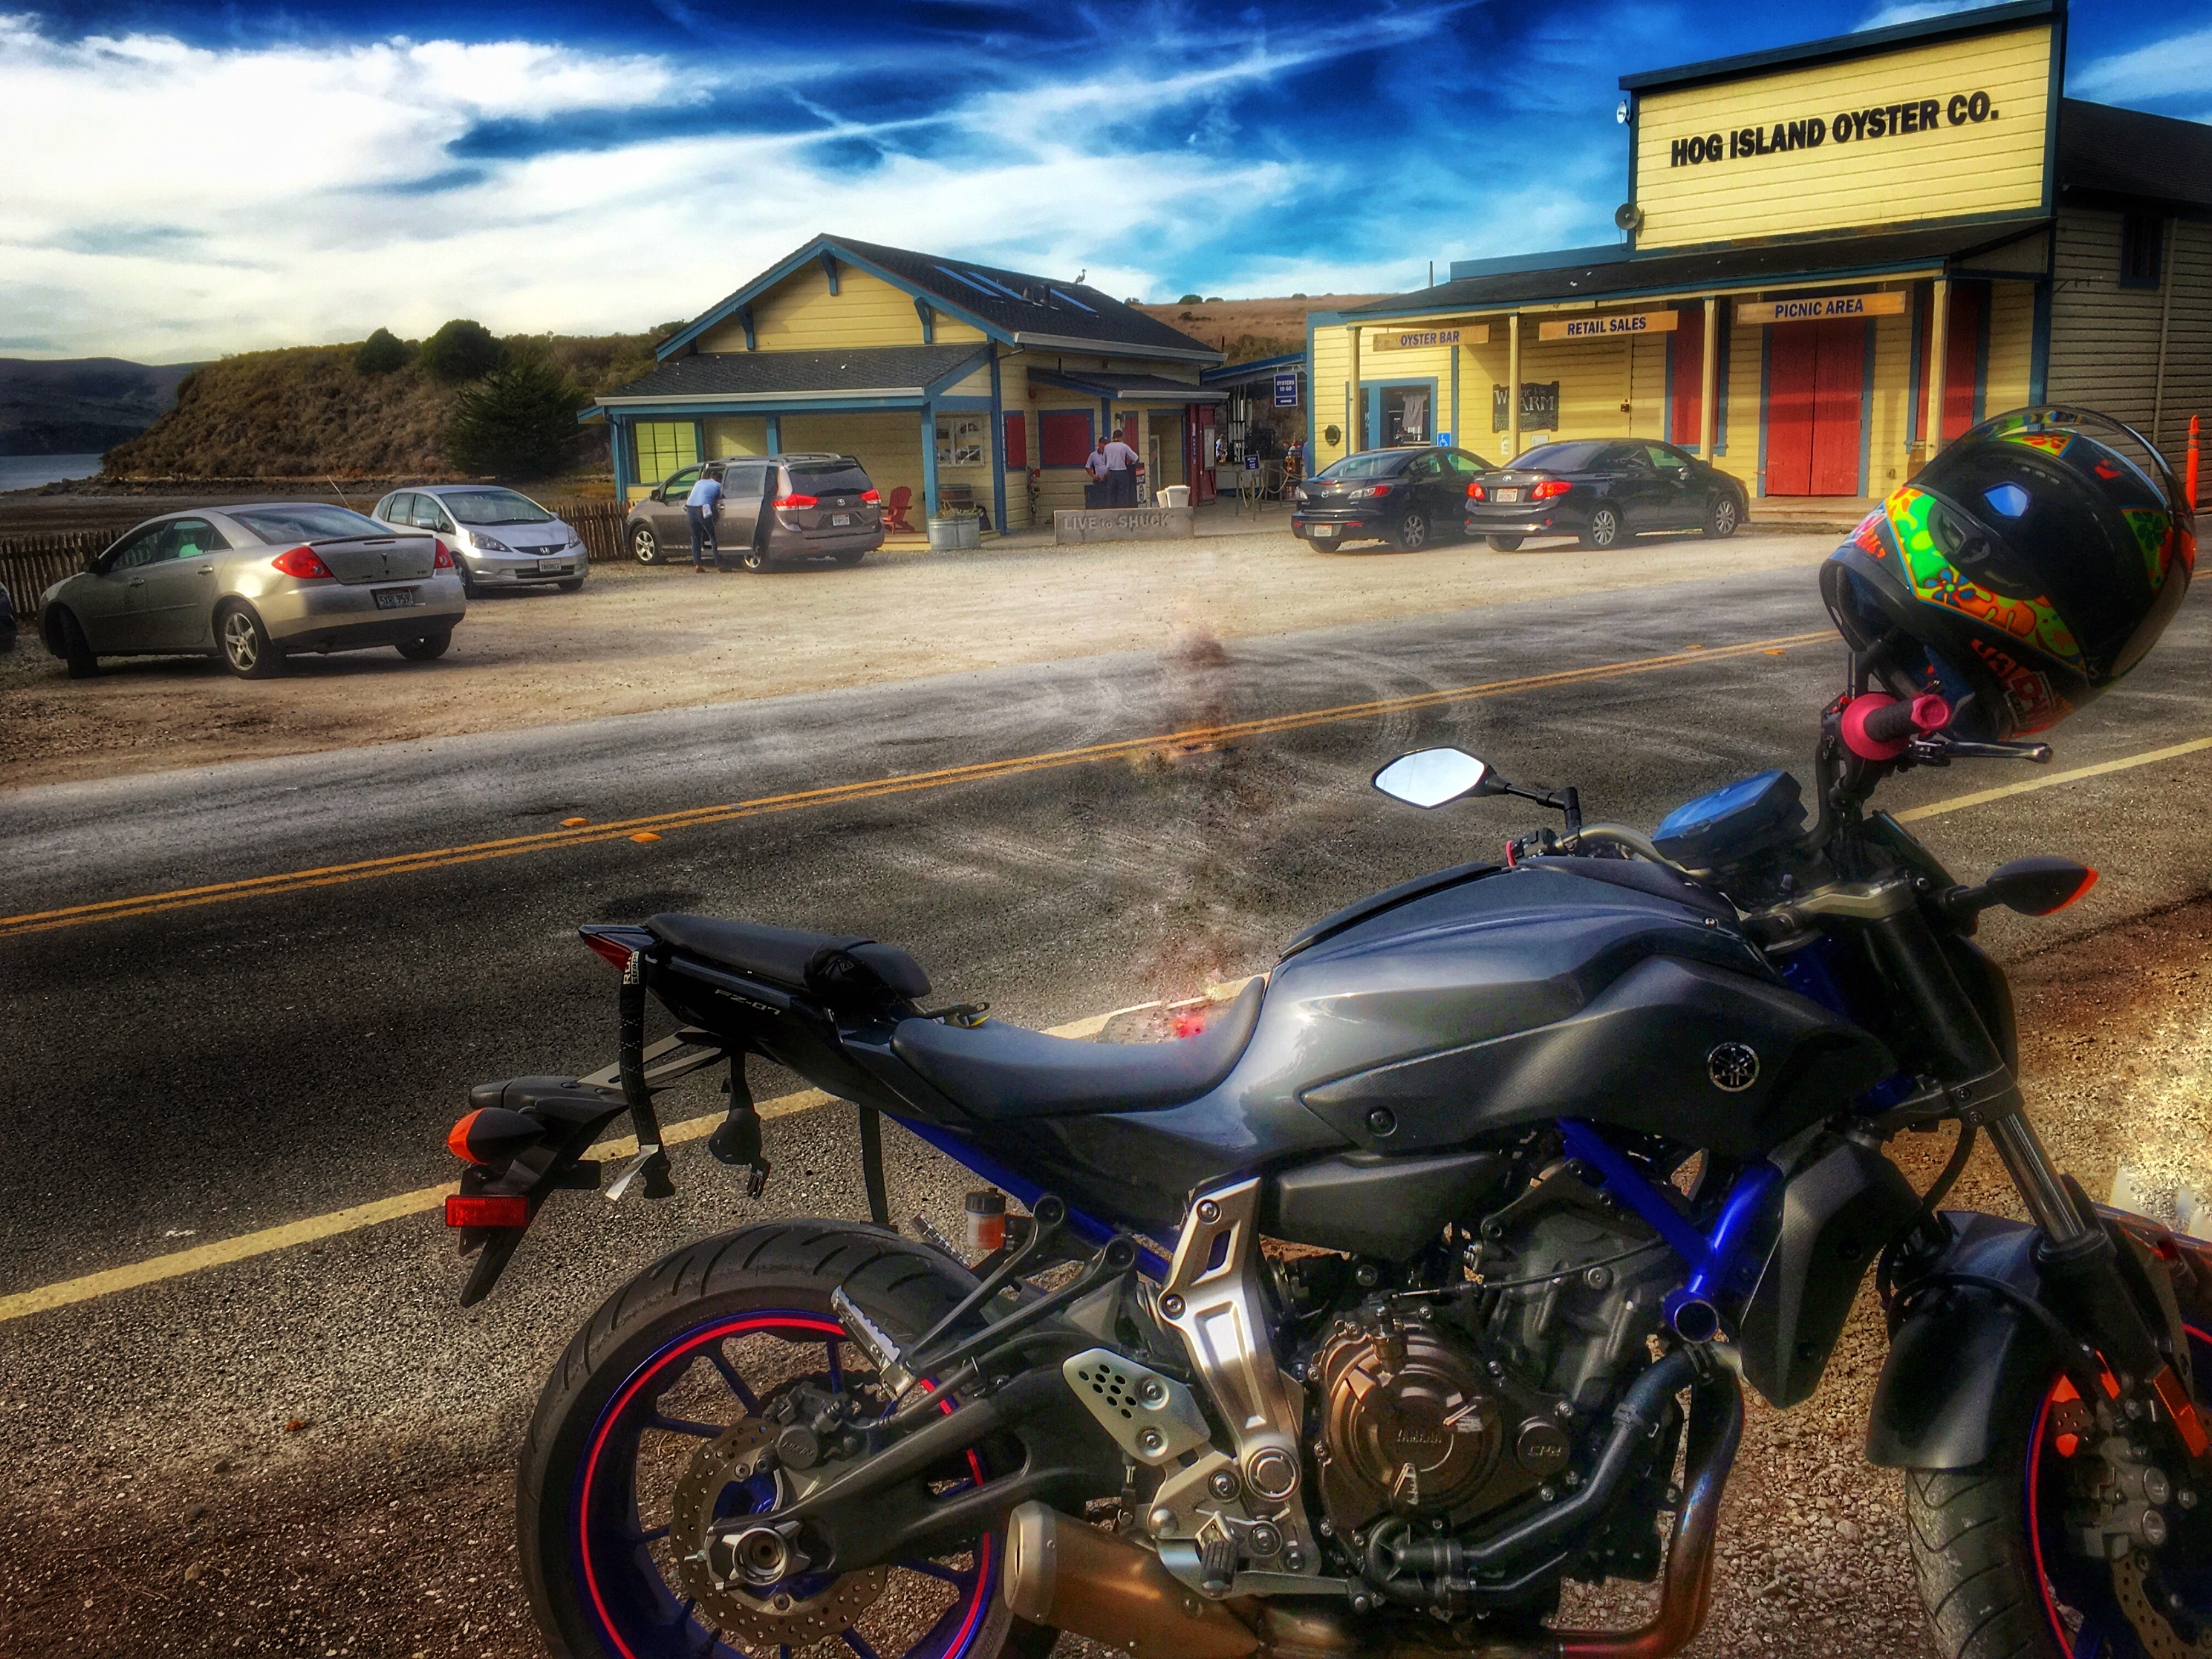 Kim's Yamaha FZ-07 at the coast